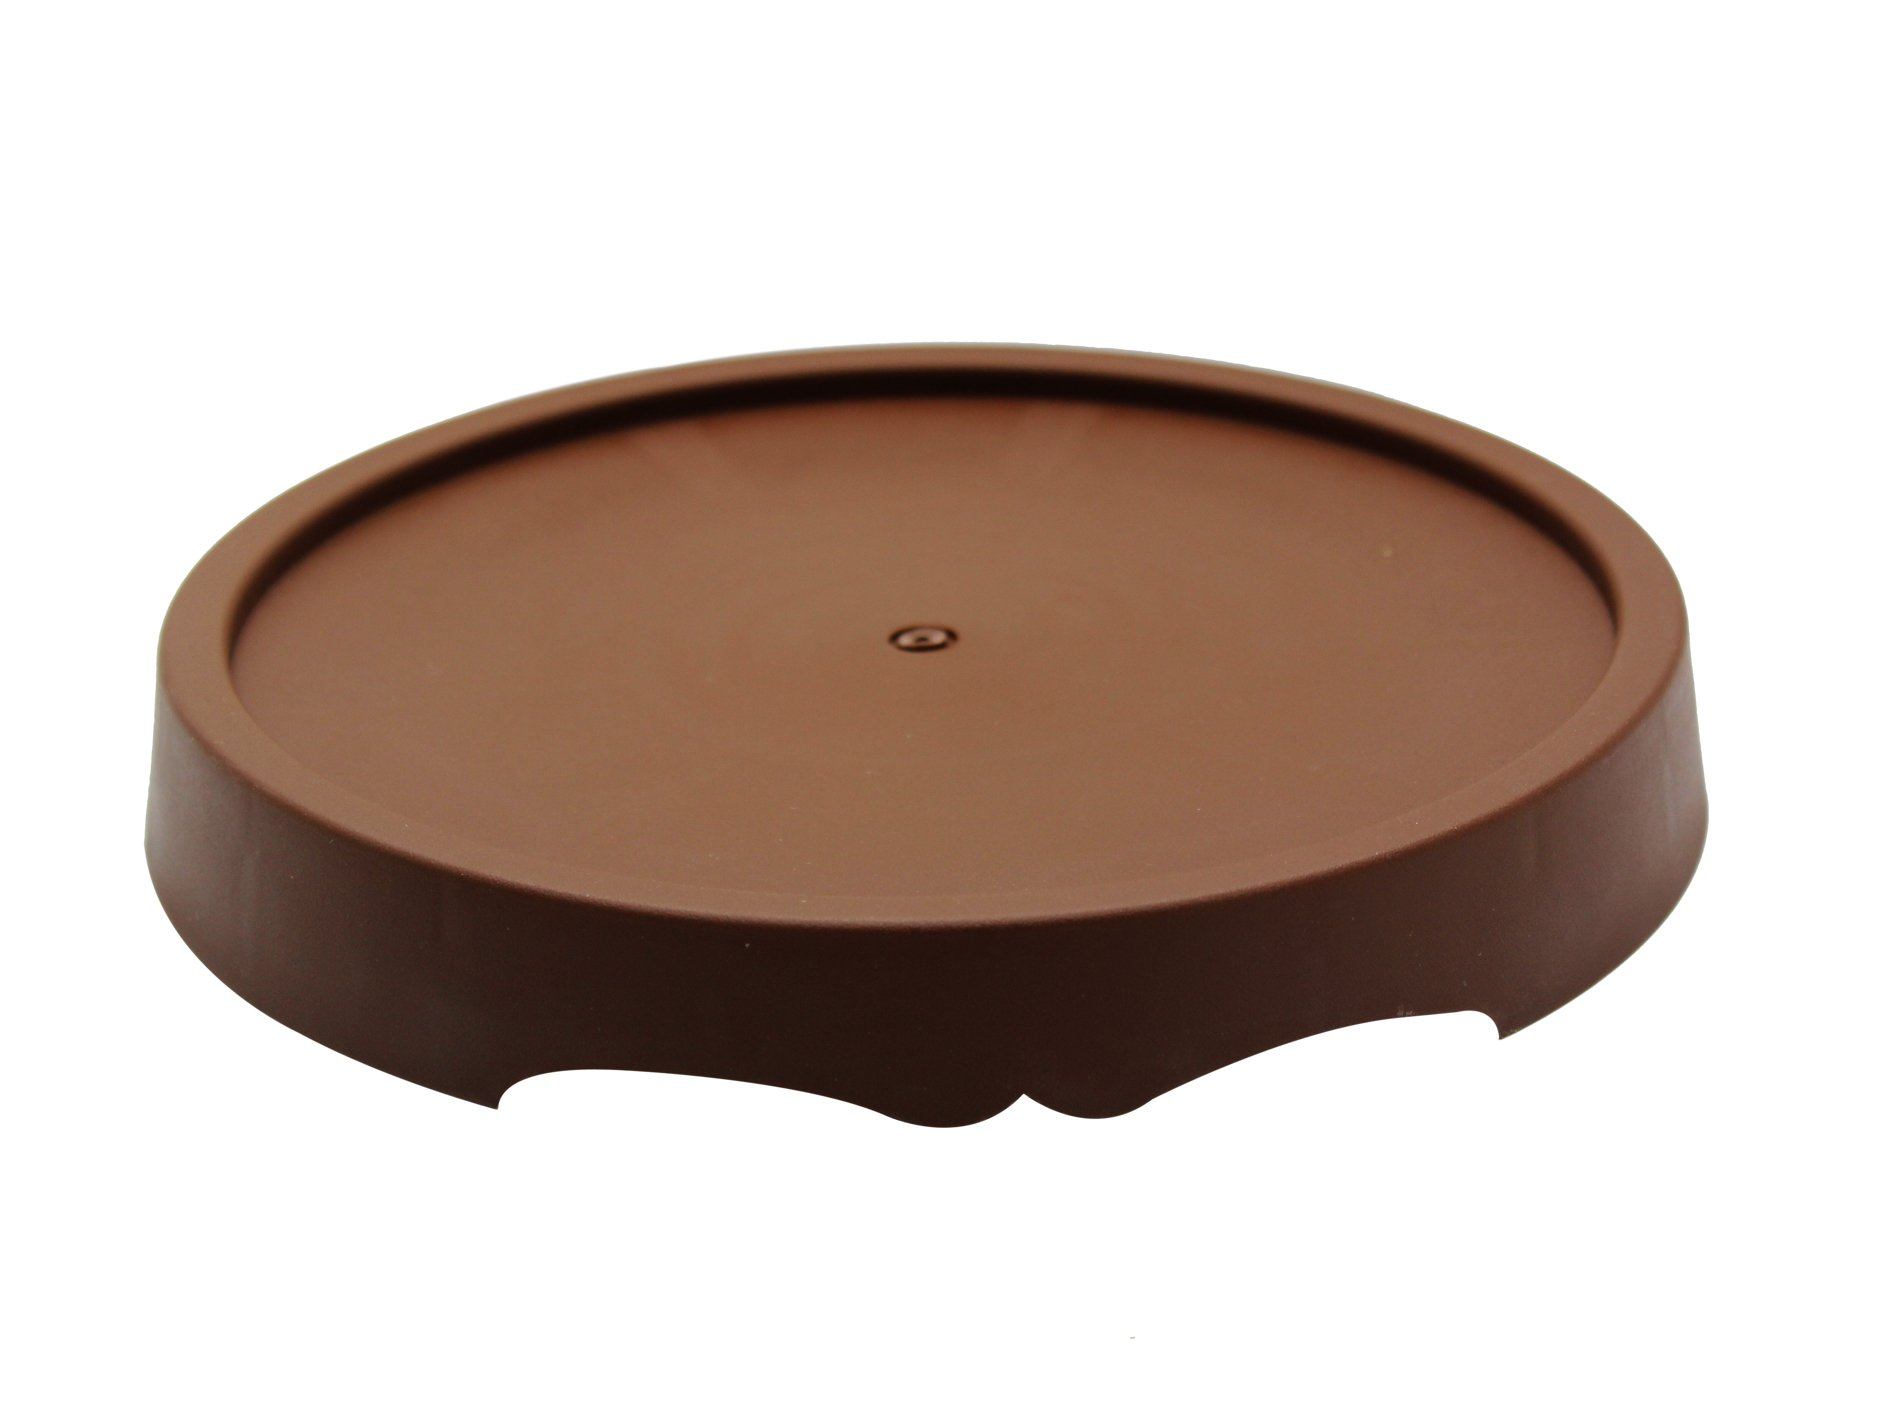 2Pcs Round Brown Plastic Plants Pot Saucer Trays,for holding Soil and Water Drips,Excellent For Indoor & Outdoor Plants. (11.0in) by coisound 1688